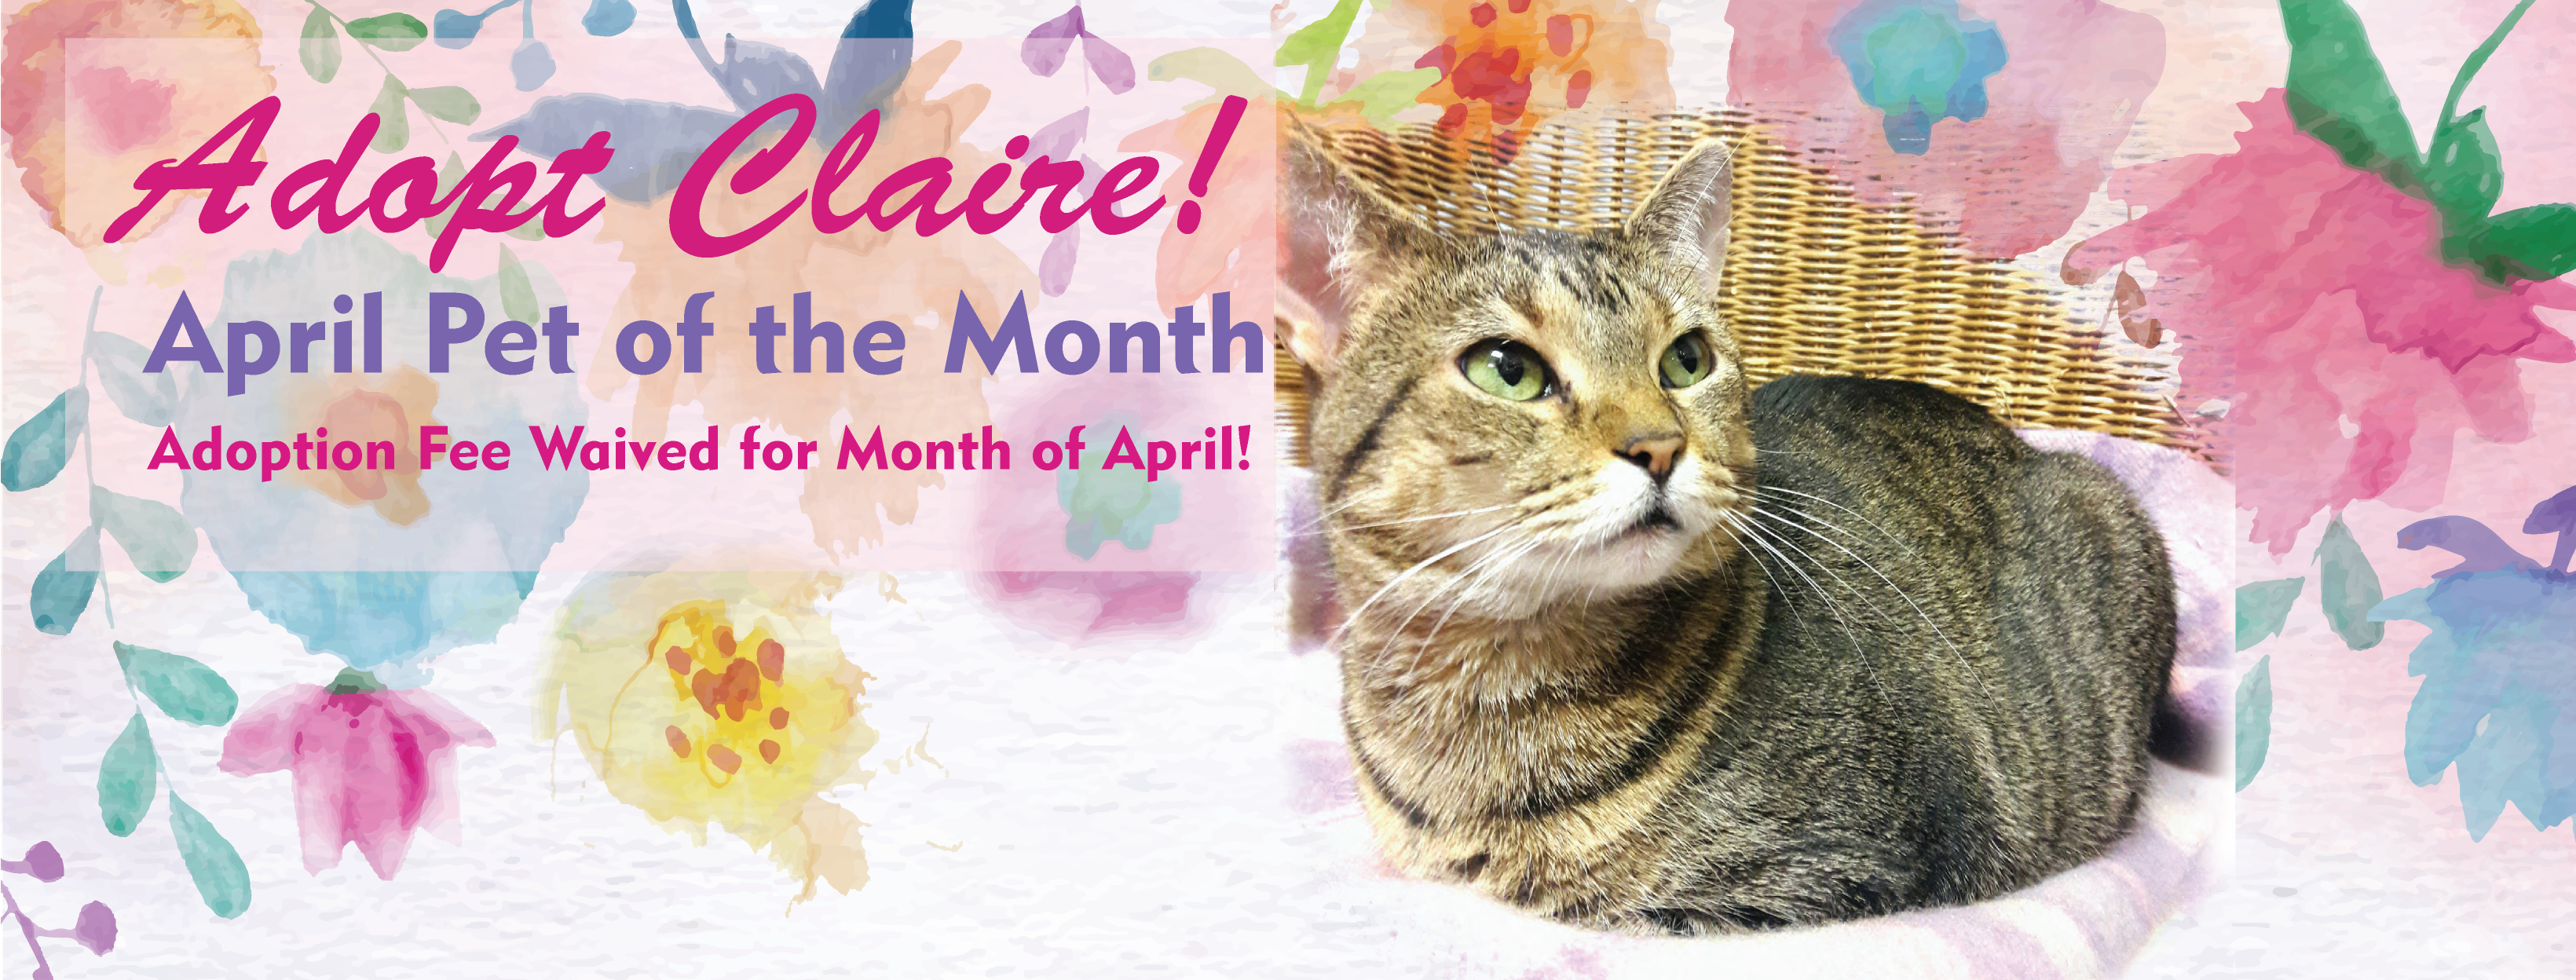 April Pet of the Month!